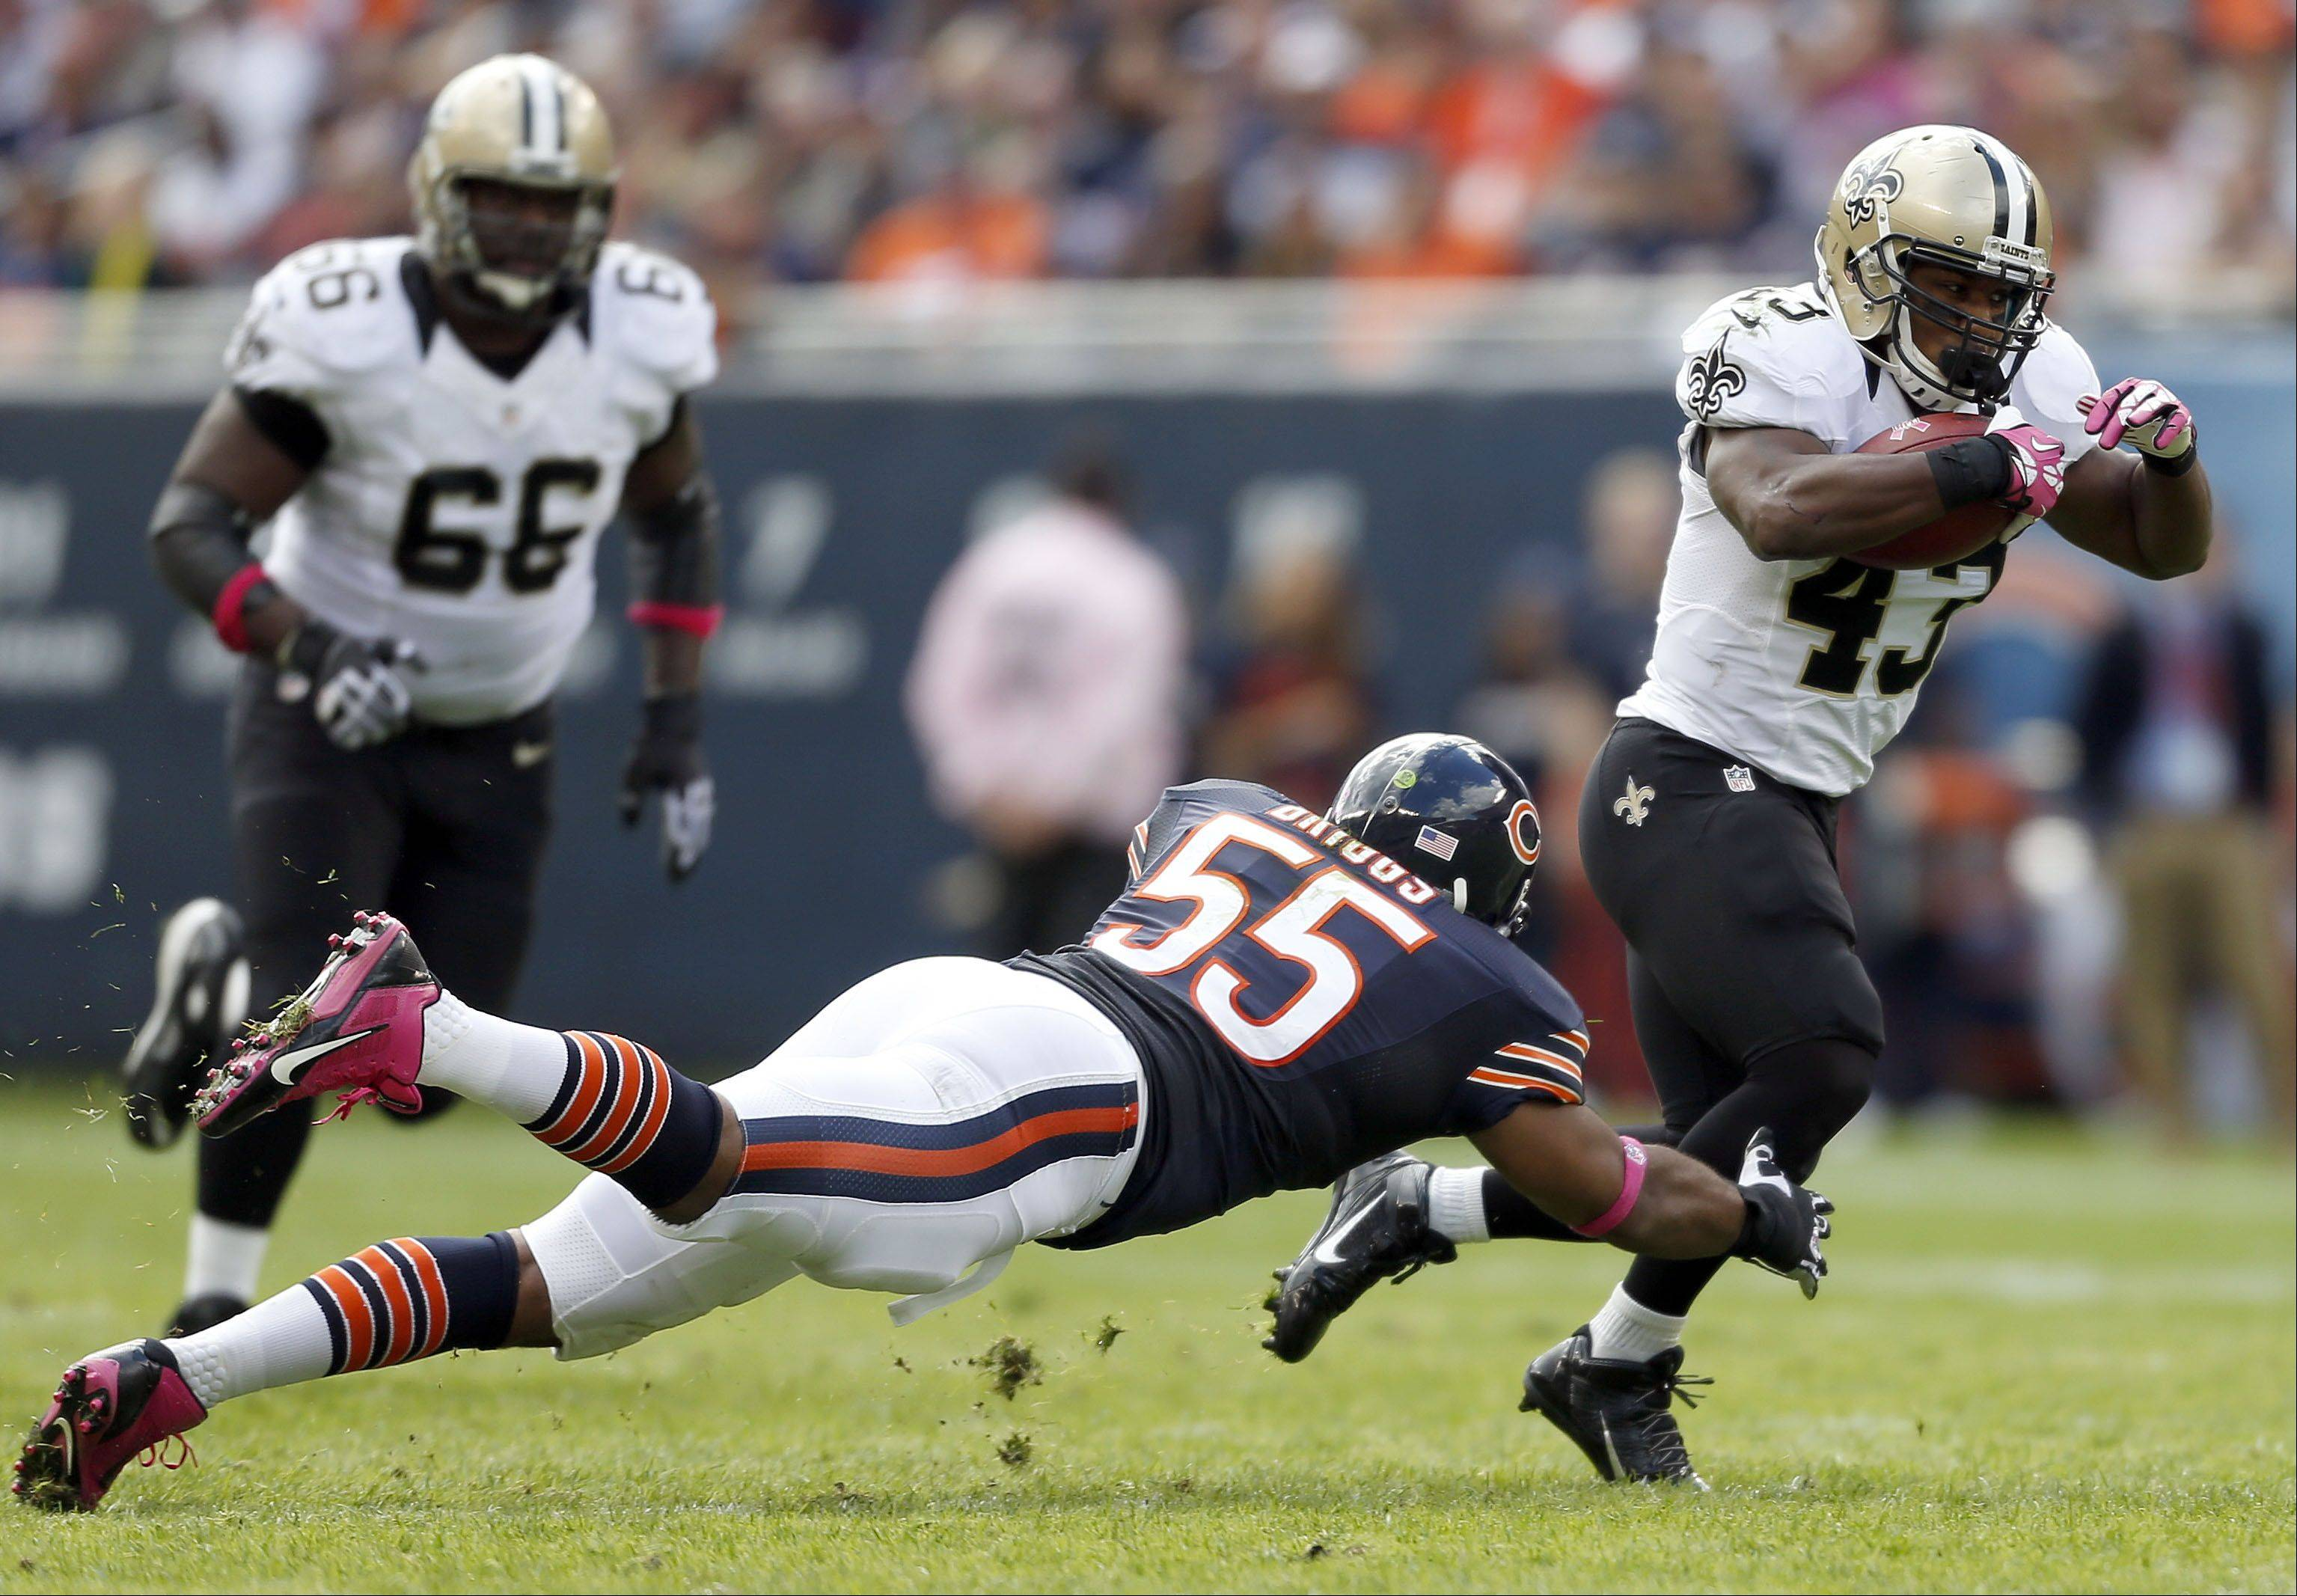 Chicago Bears outside linebacker Lance Briggs tries to tackle New Orleans Saints running back Darren Sproles.